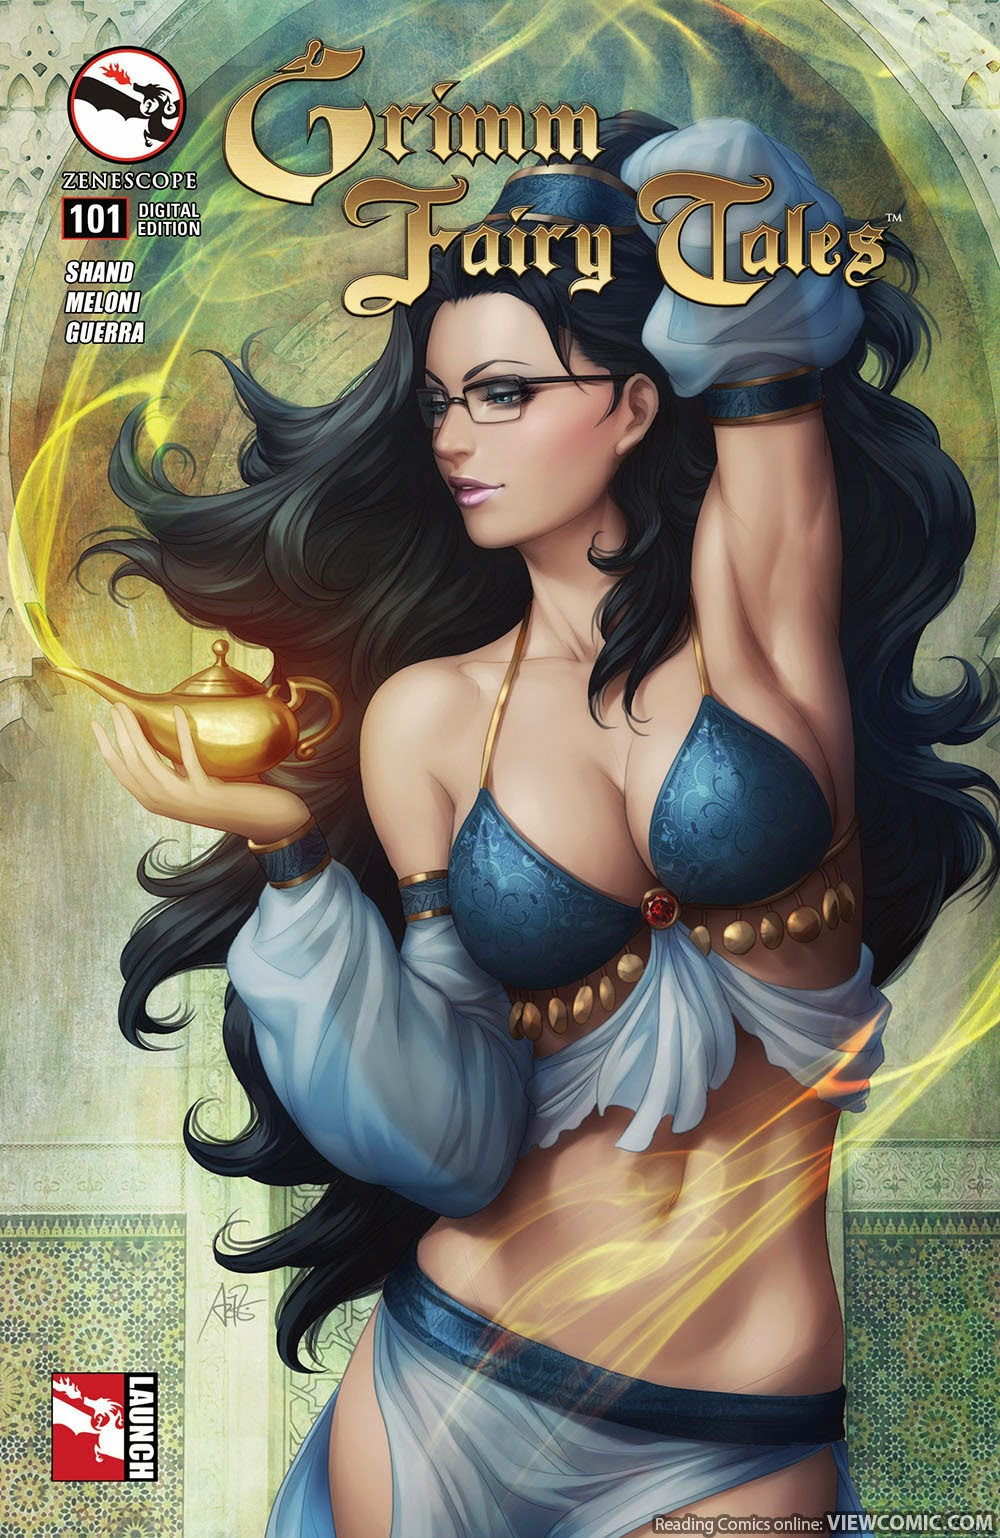 Grimm Fairy Tales   Viewcomic reading comics online for free